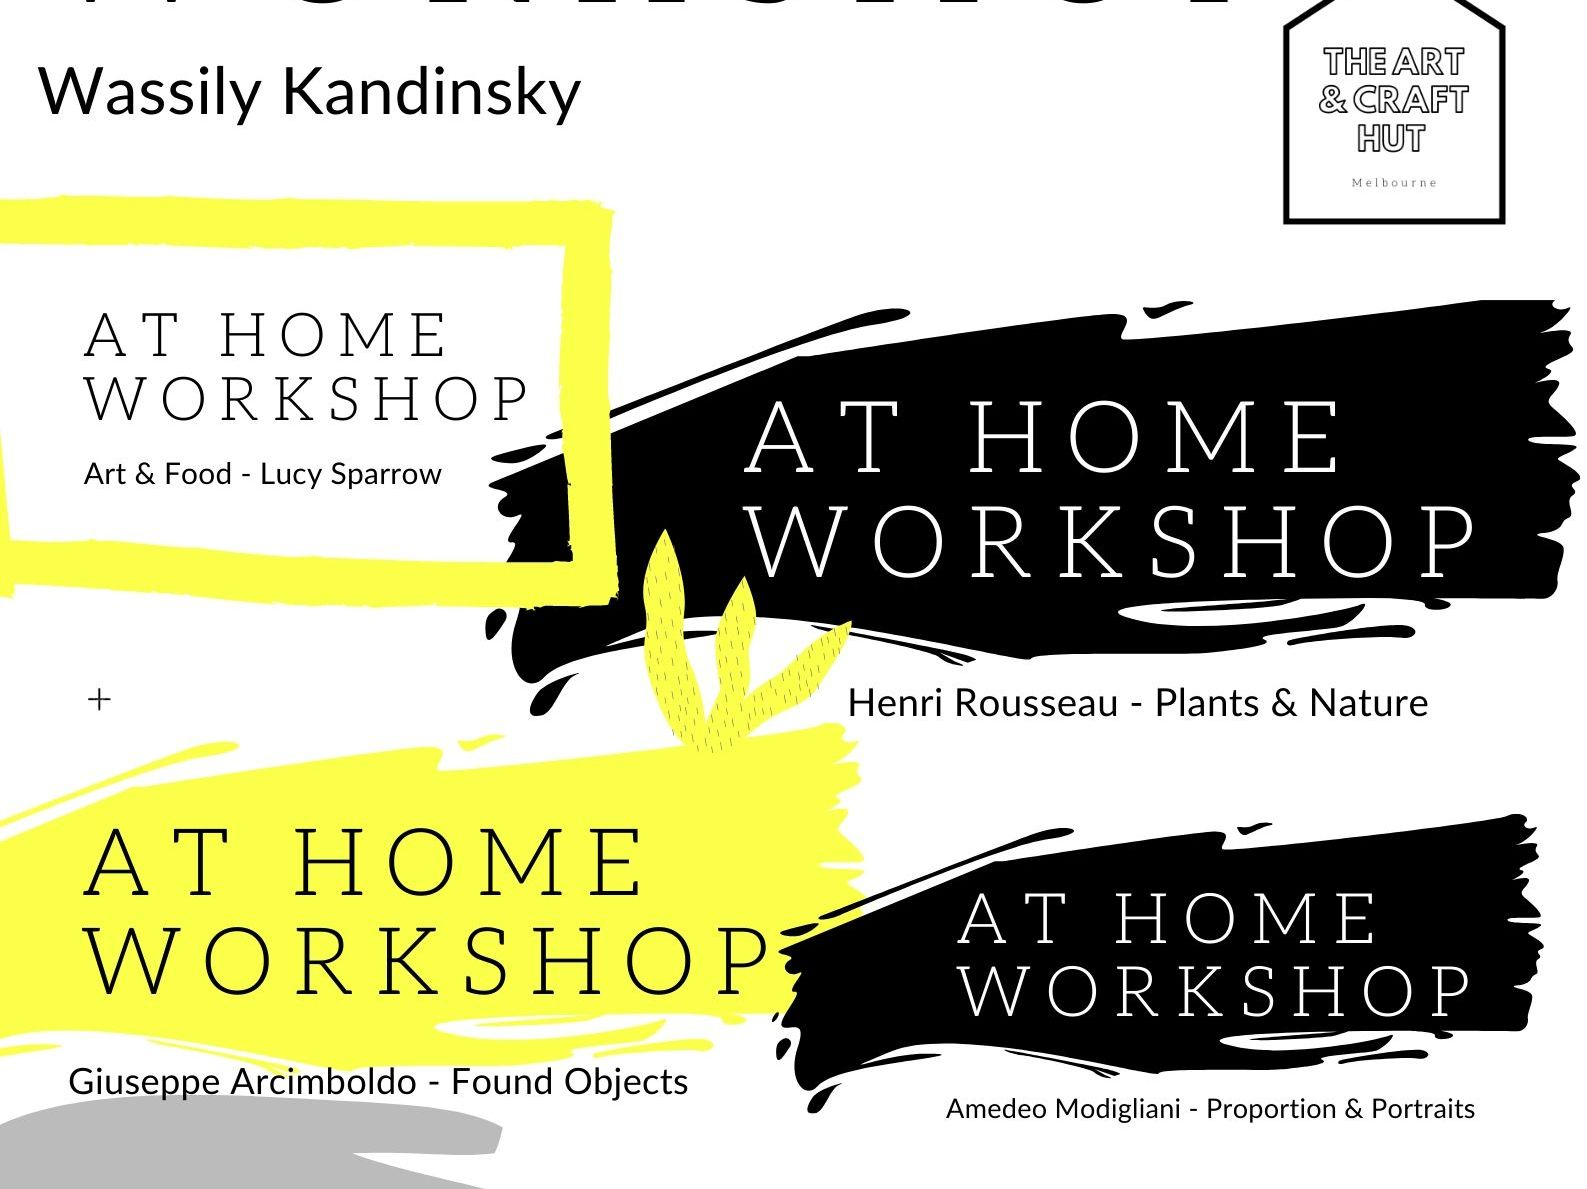 At Home Art Workshops Inspired By Historical & Modern Artists | For Remote Teaching & Learning